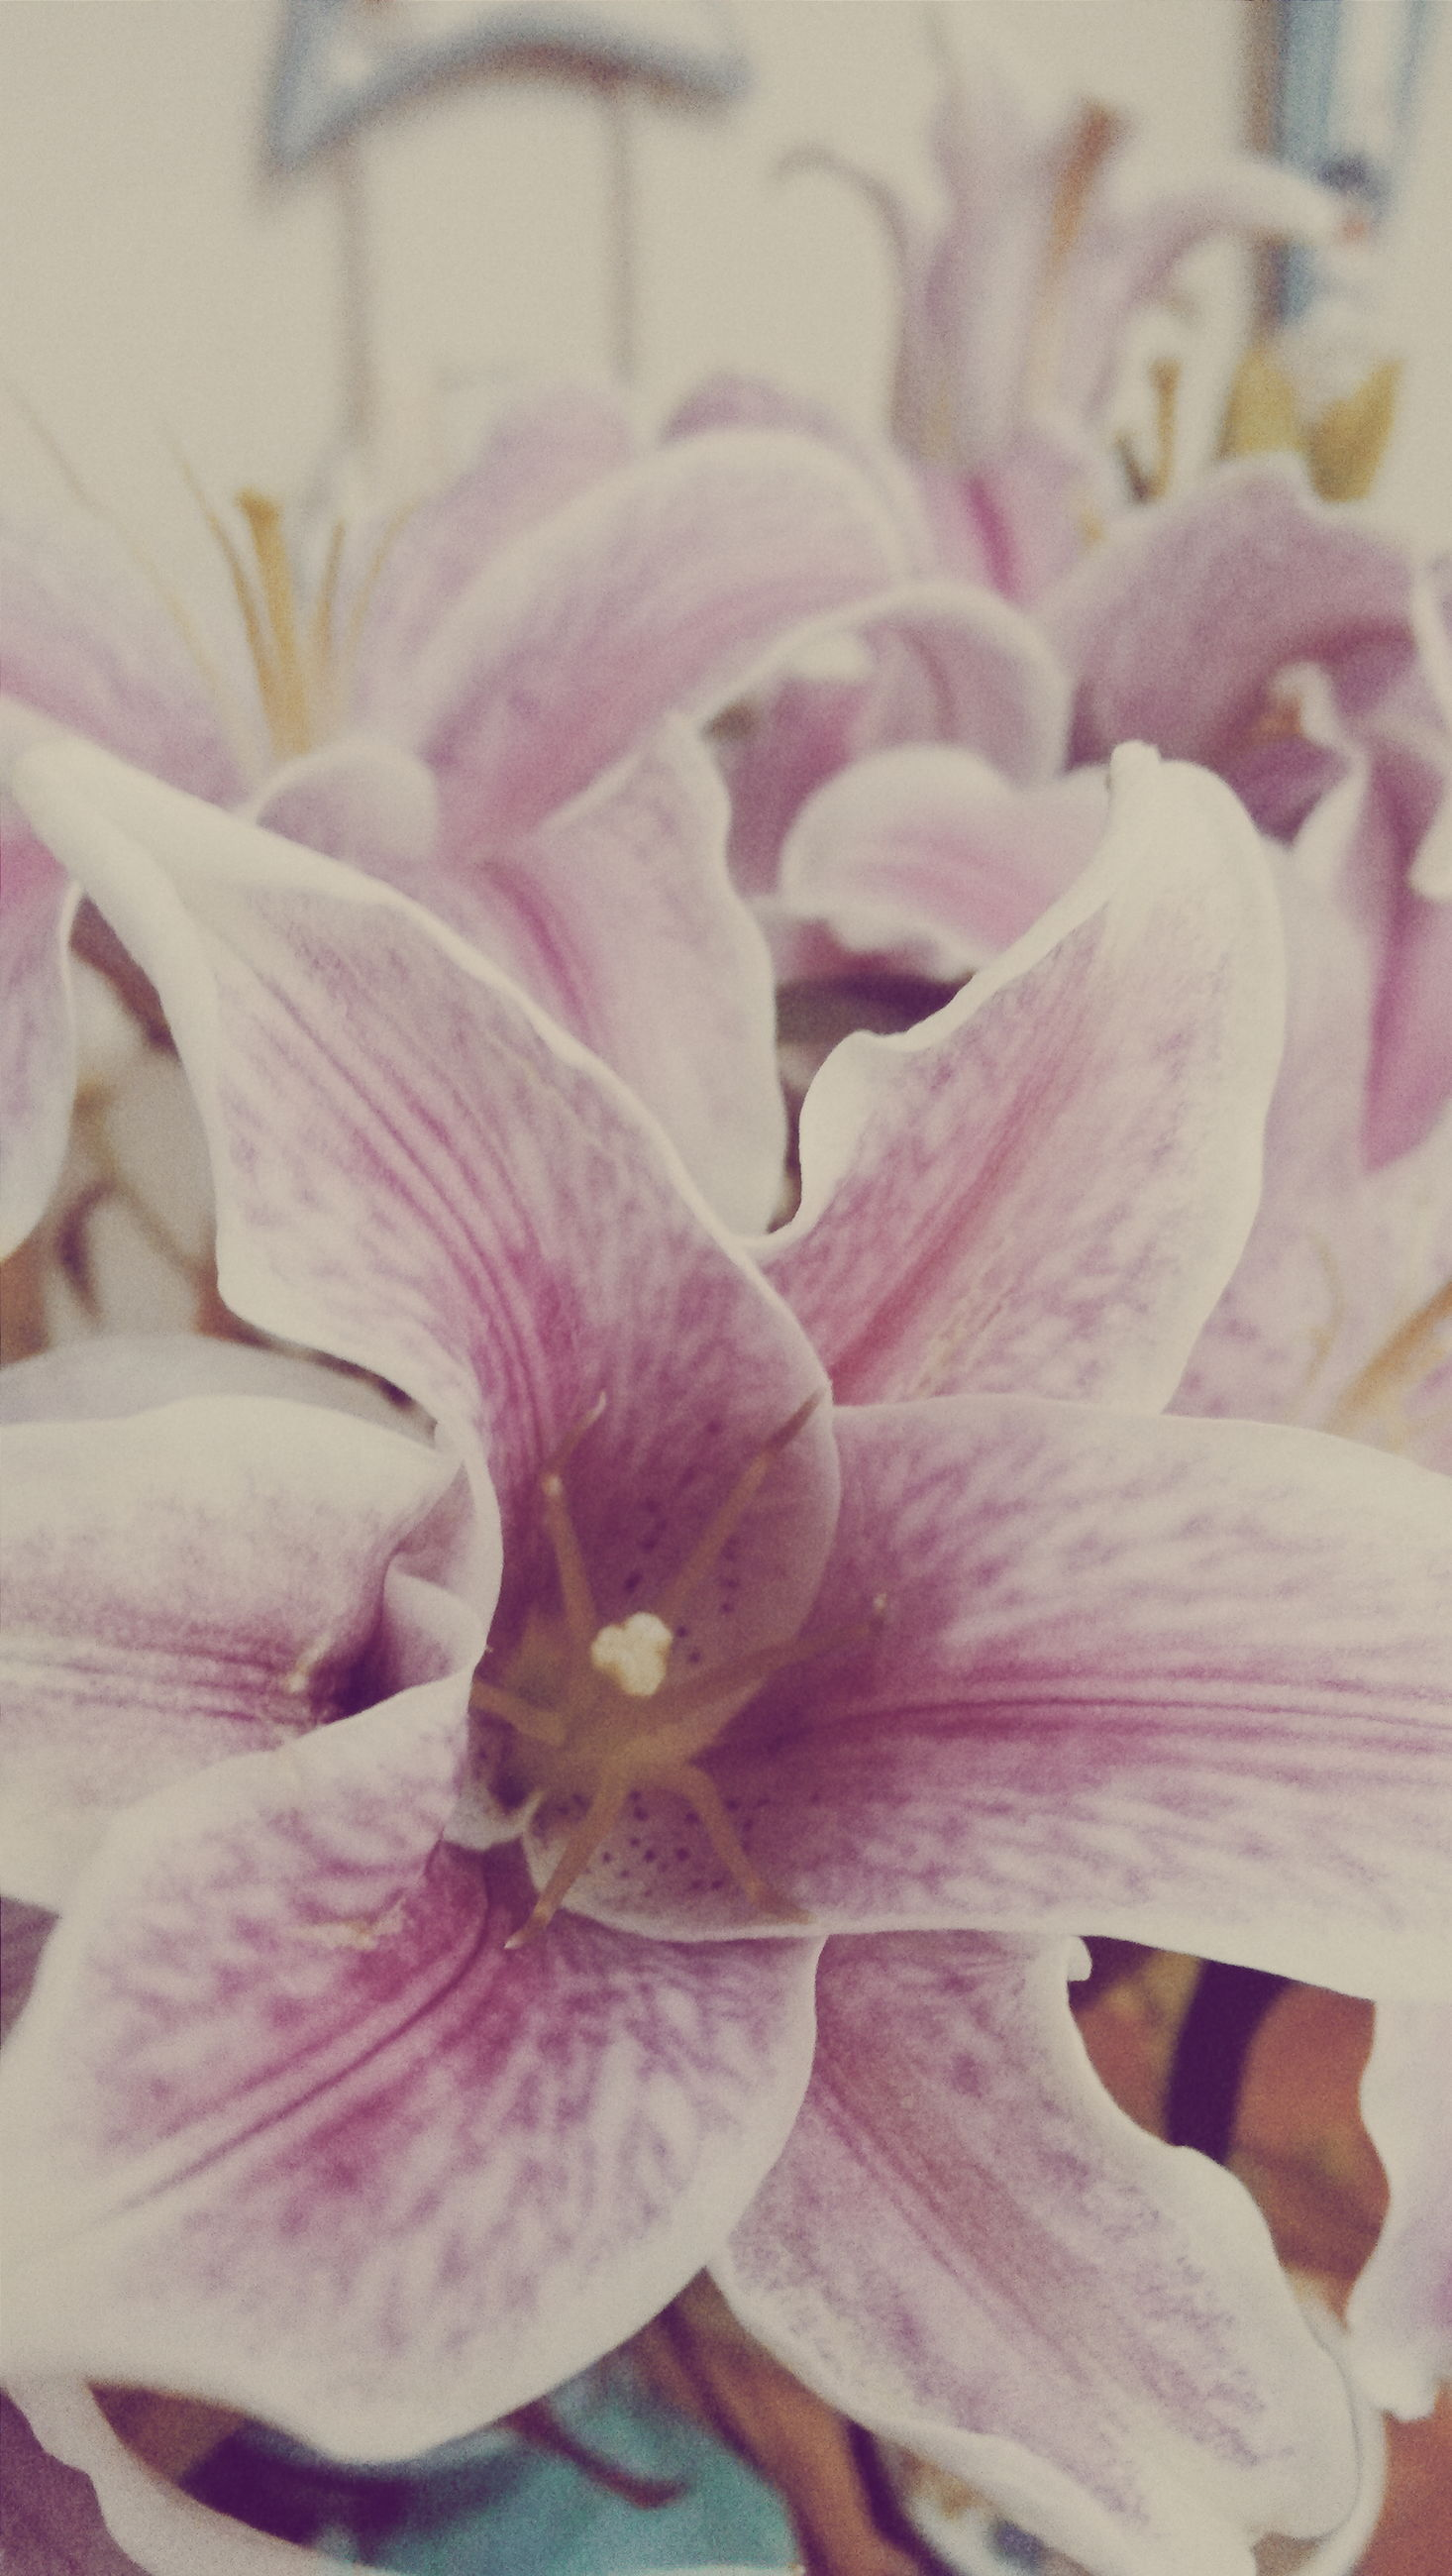 flower, petal, freshness, flower head, fragility, close-up, beauty in nature, growth, nature, pink color, blooming, indoors, purple, plant, full frame, backgrounds, no people, focus on foreground, selective focus, day